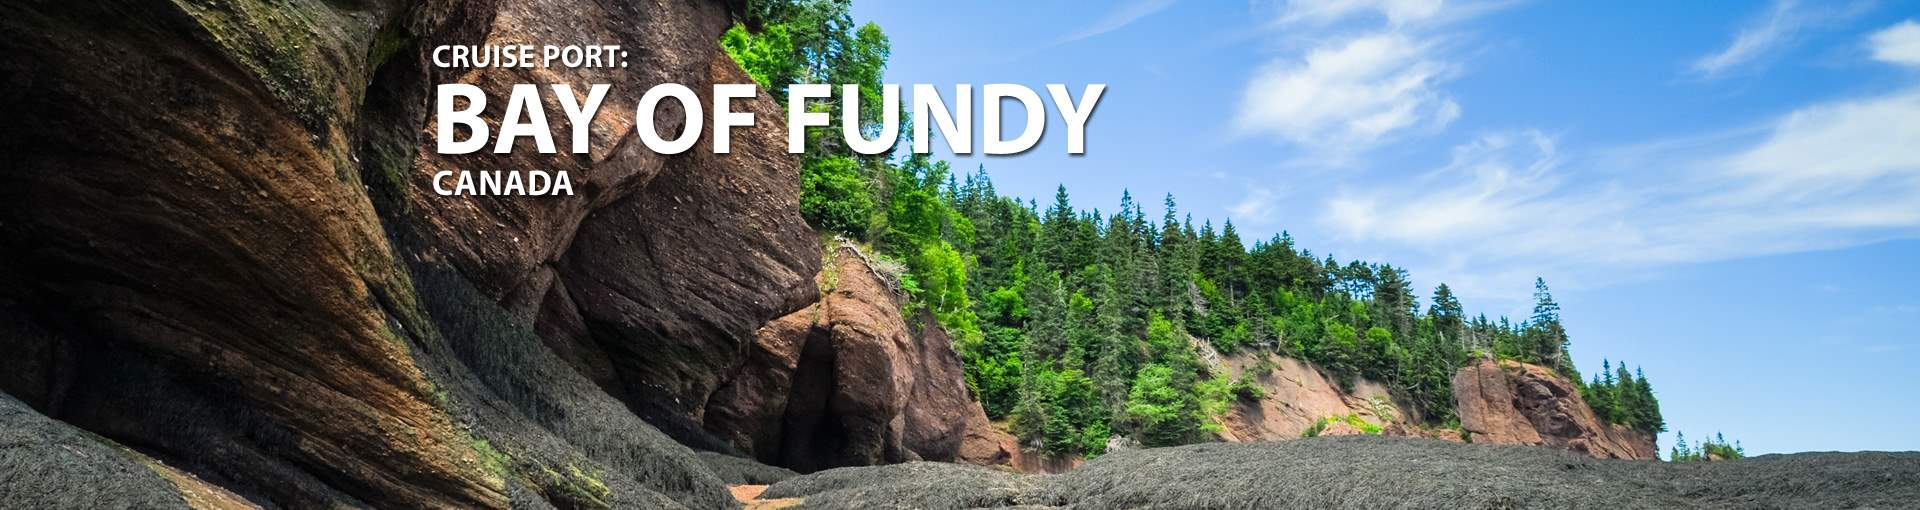 Cruises to Bay of Fundy, Canada